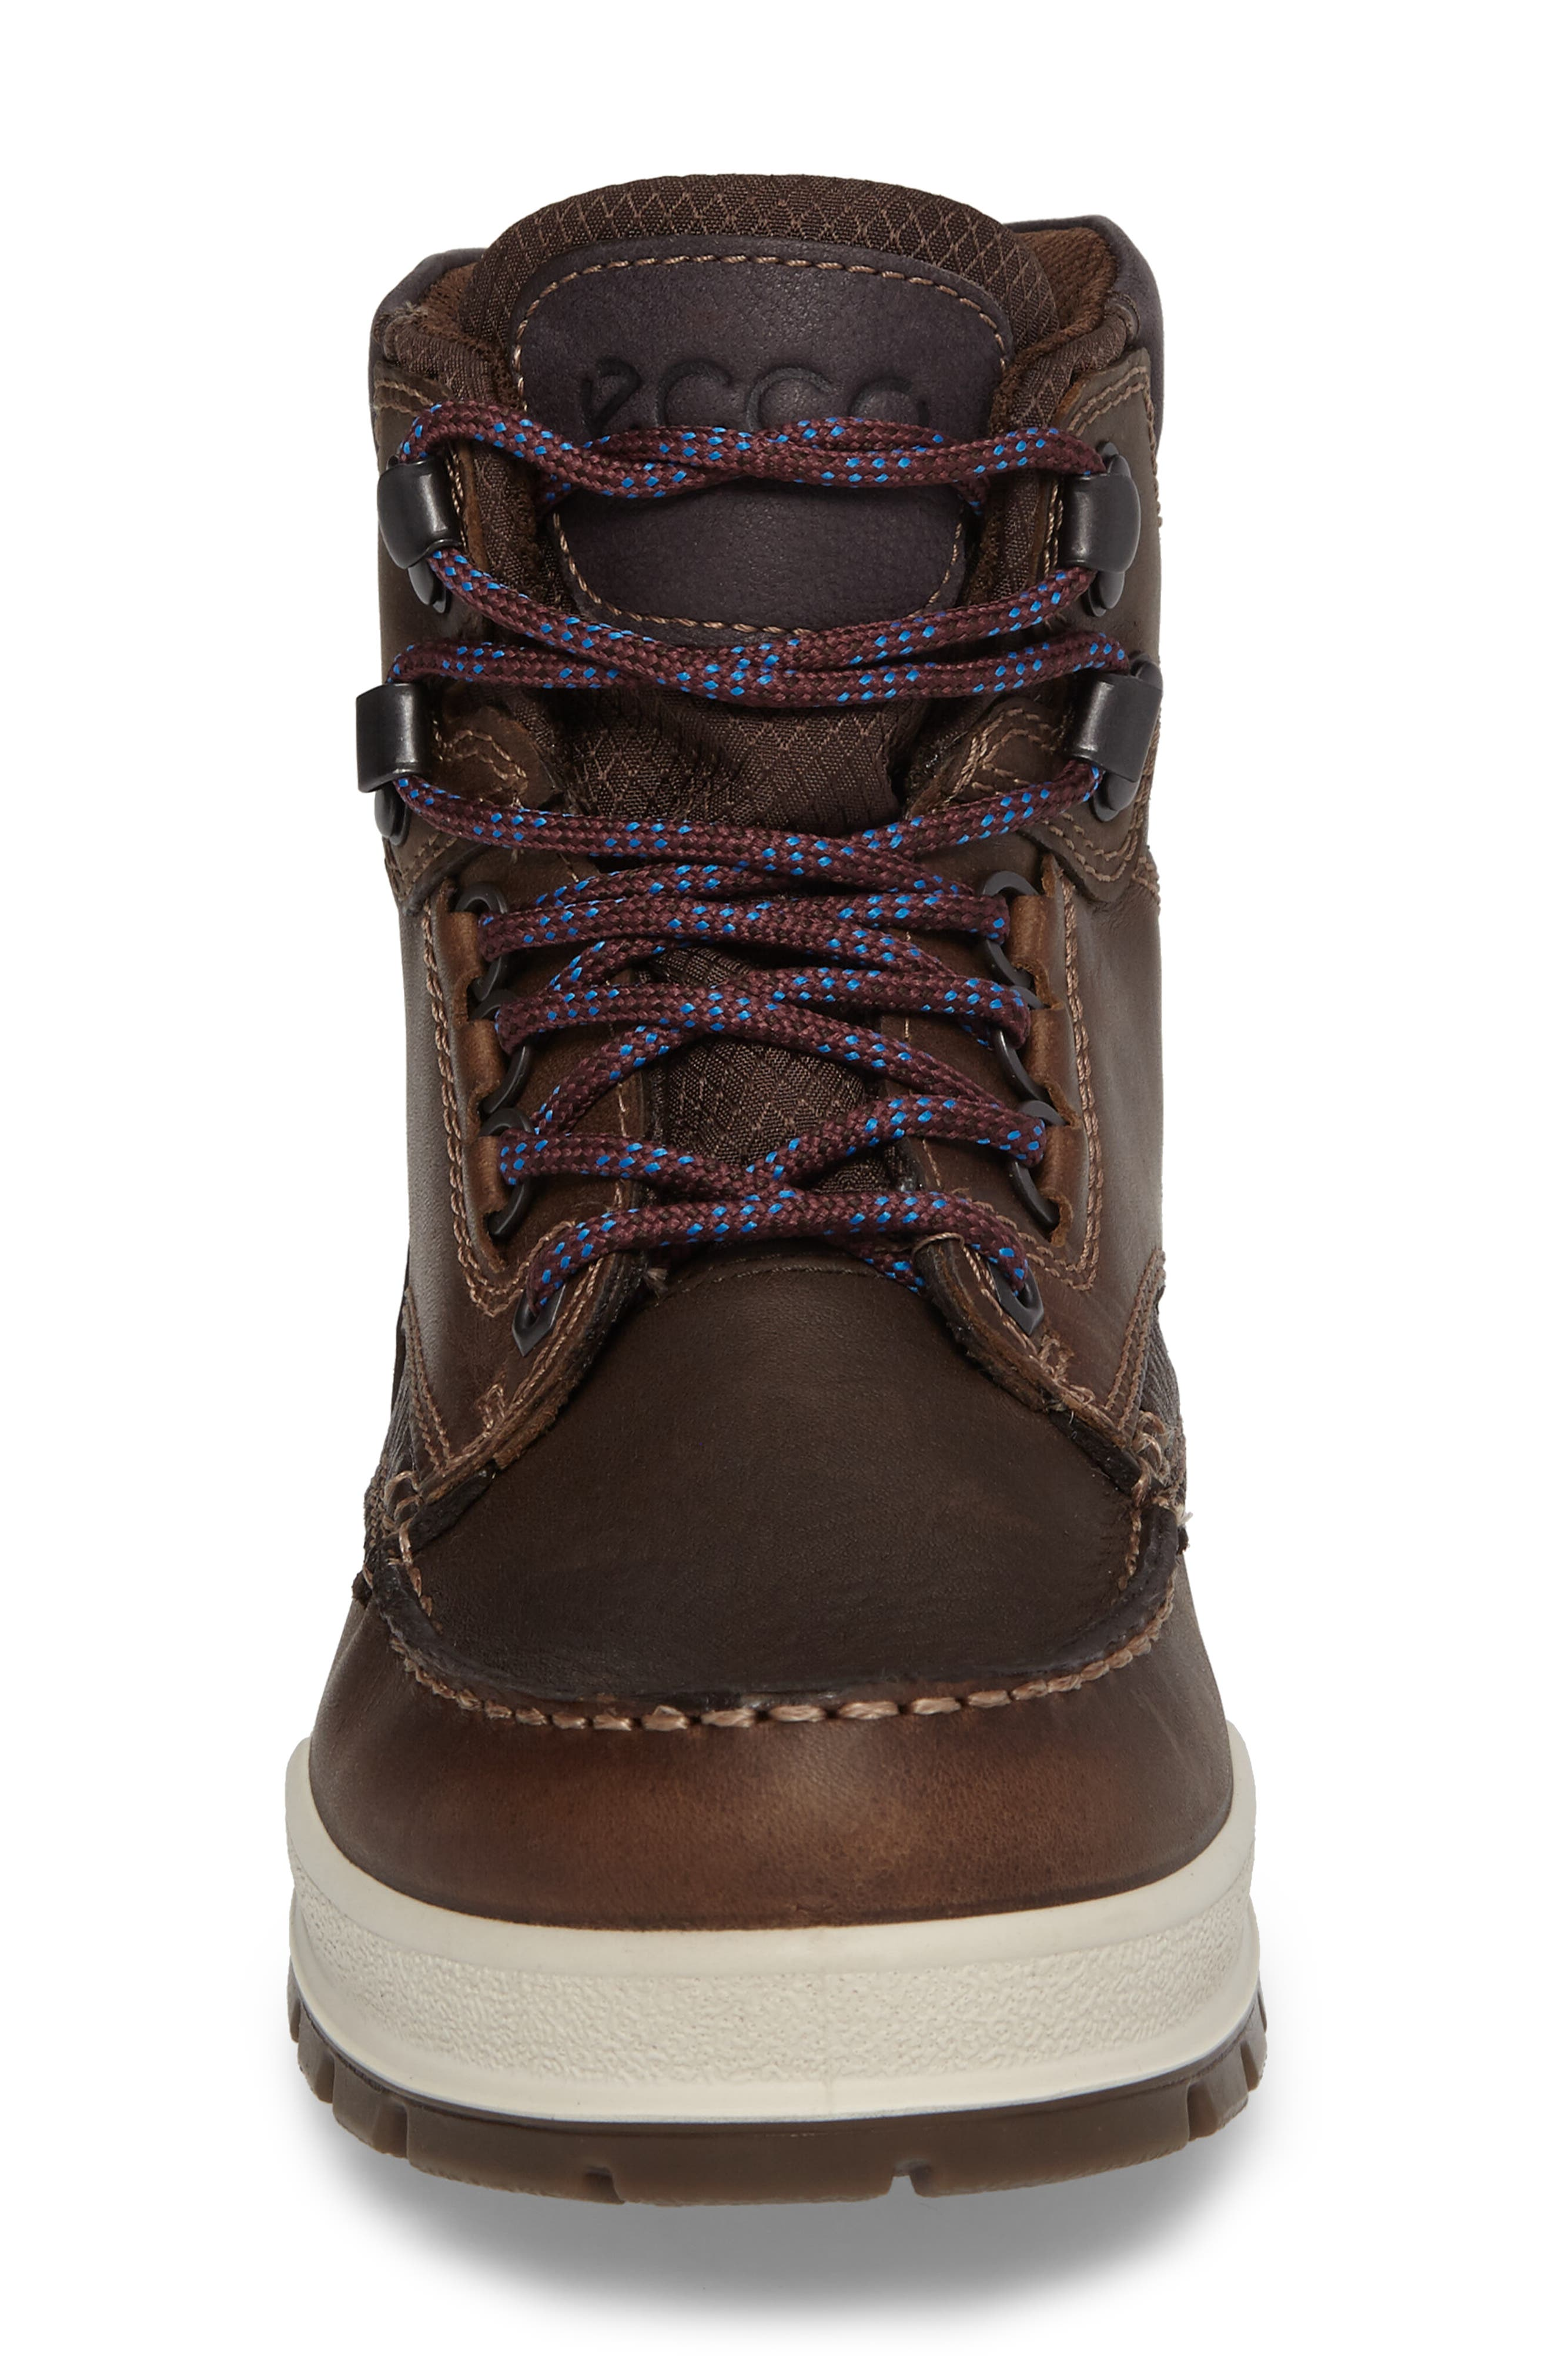 Track 25 Gore-Tex<sup>®</sup> Waterproof Hiking Boot,                             Alternate thumbnail 4, color,                             Cocoa Brown Leather